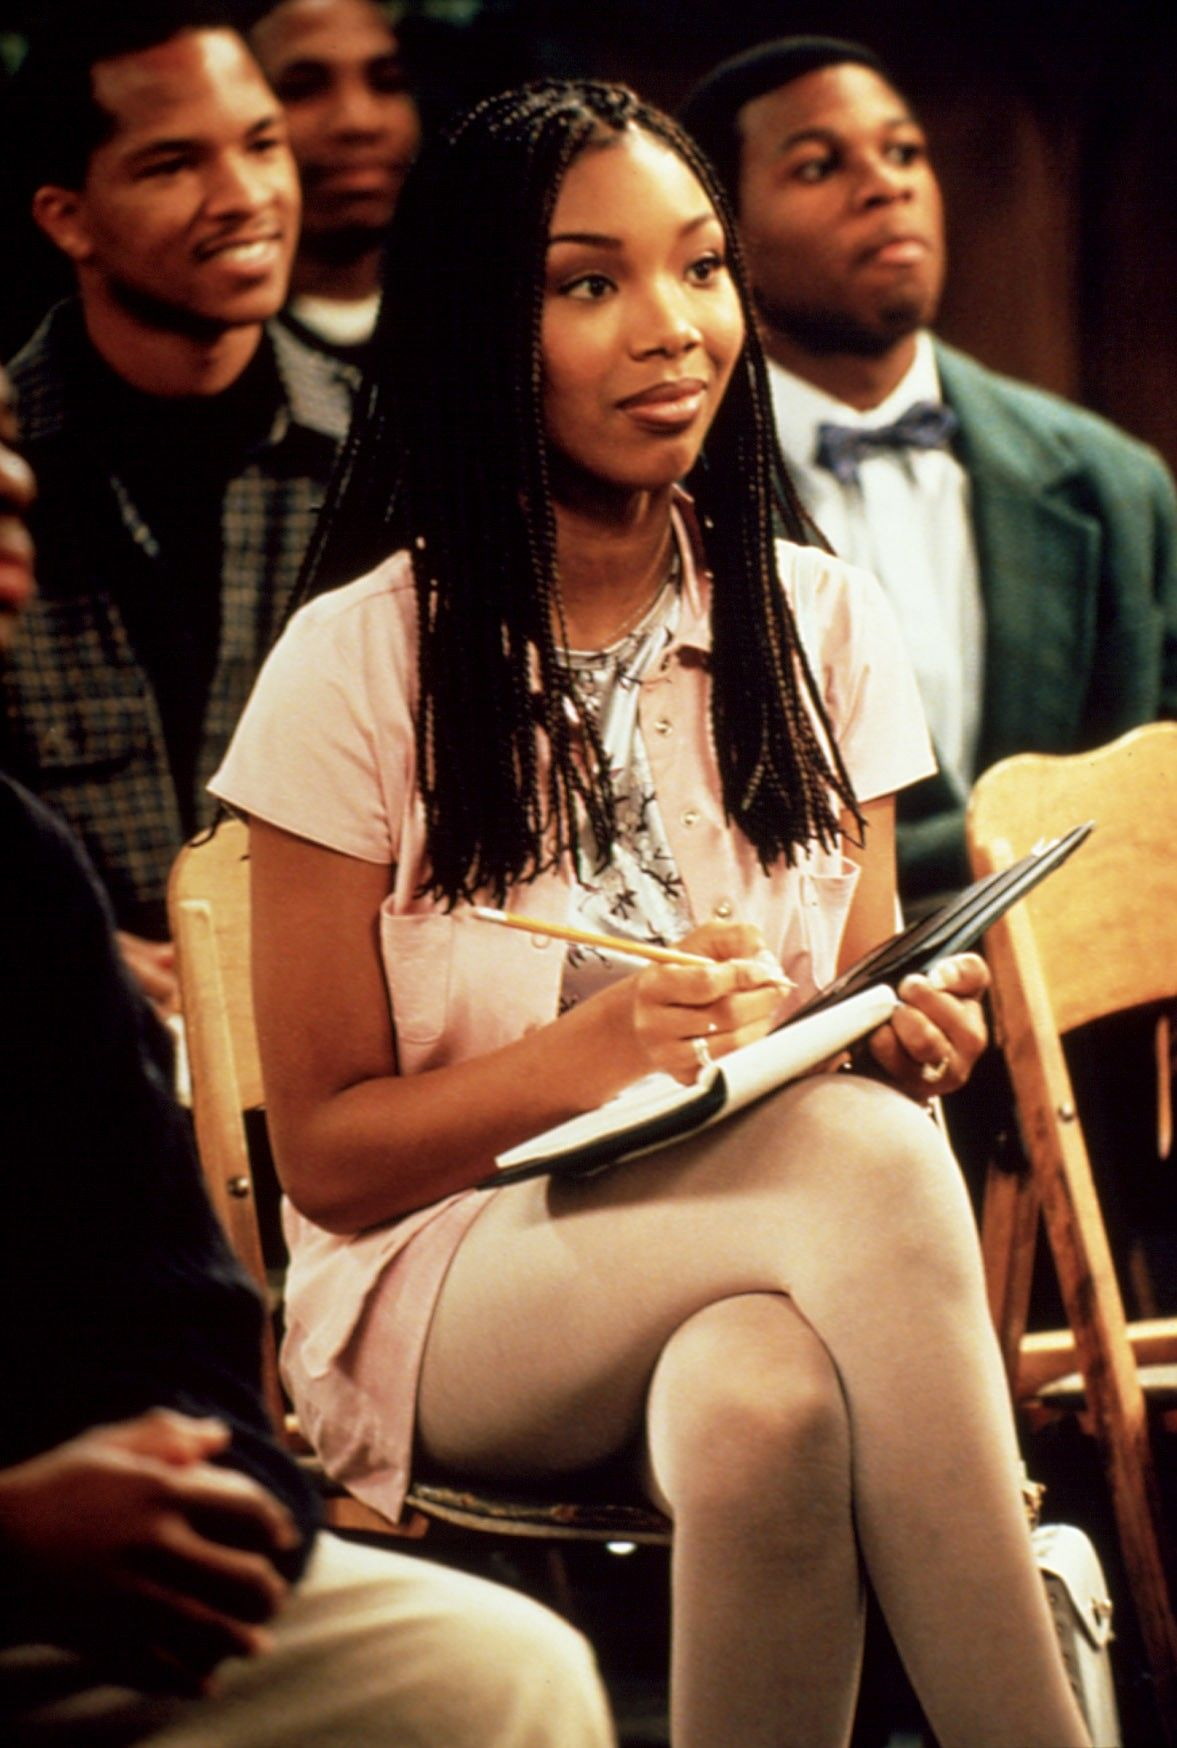 Long Before Brandy Norwood Released An Album Or Appeared As Cinderella She Starred On The 90s Show Moesha Brandy Braids Brandy Norwood Tv Characters